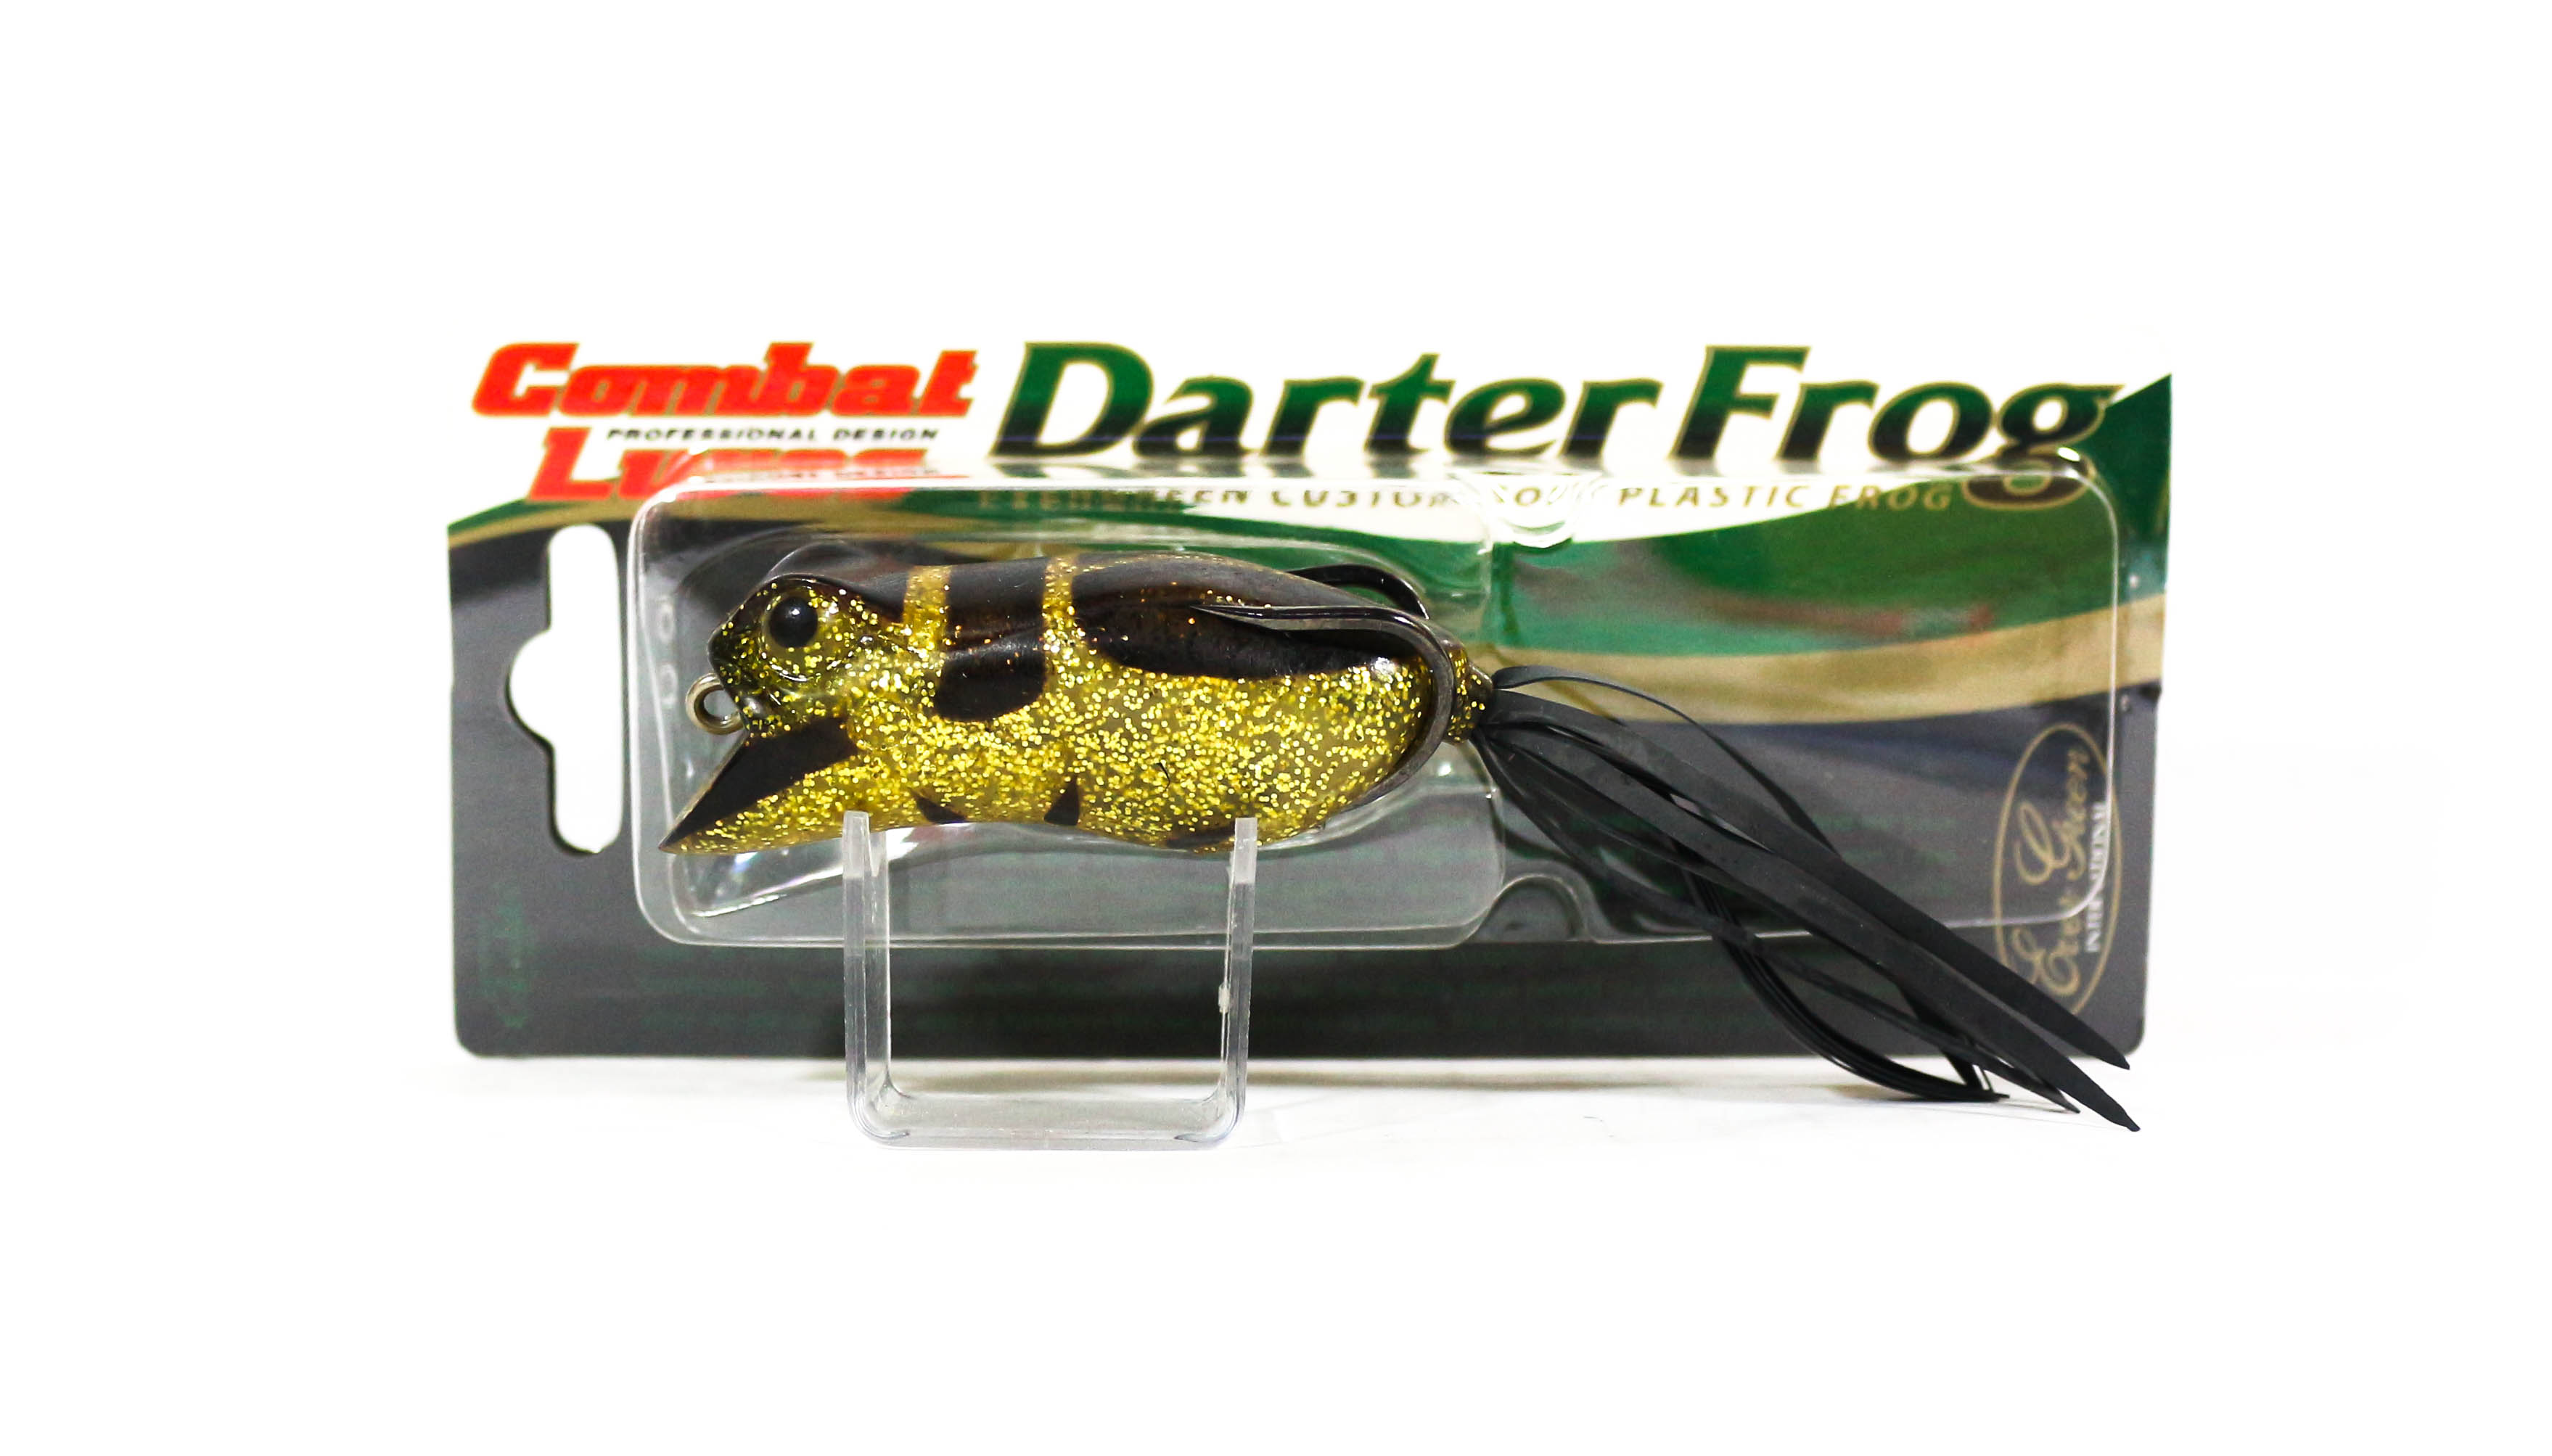 Sale Evergreen Darter Frog Soft Plastic Floating Lure 220 (9859)